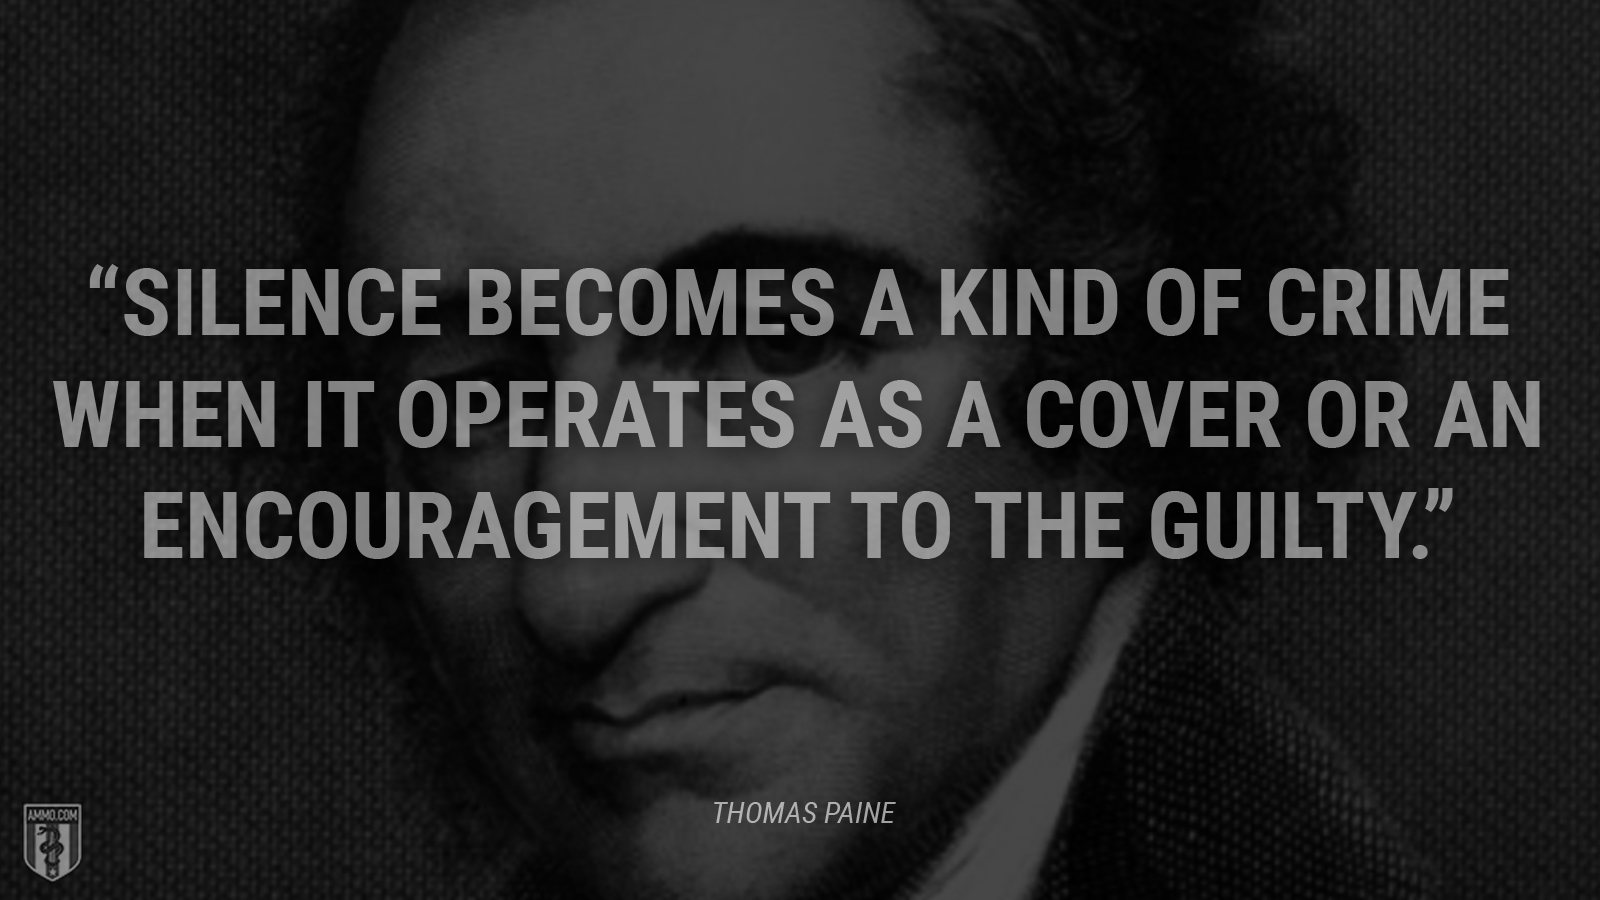 """""""Silence becomes a kind of crime when it operates as a cover or an encouragement to the guilty."""" - Thomas Paine"""